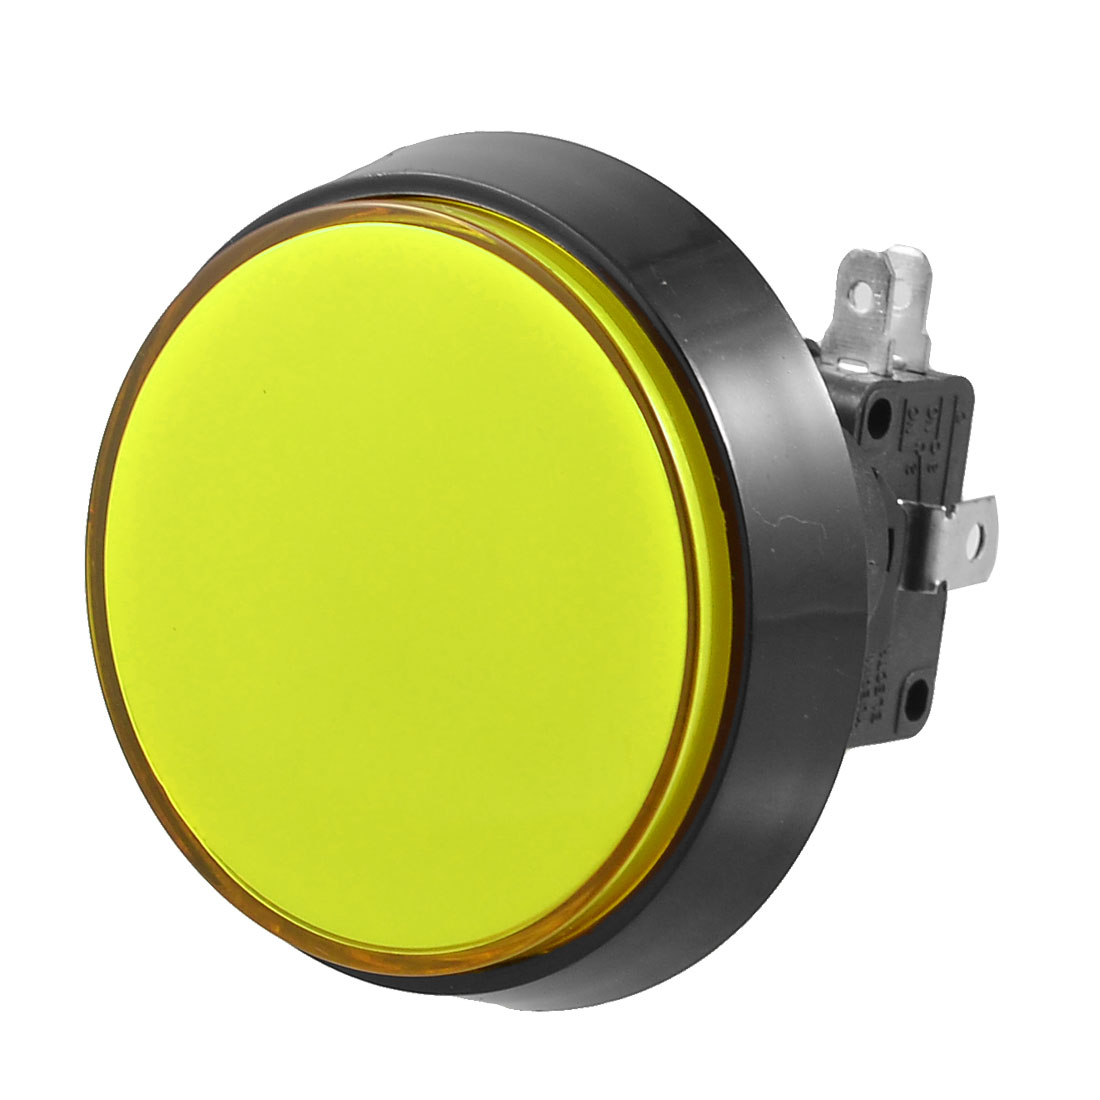 50mm Dia Yellow Round Push Button w Micro Limit Switch for Arcade Video Game